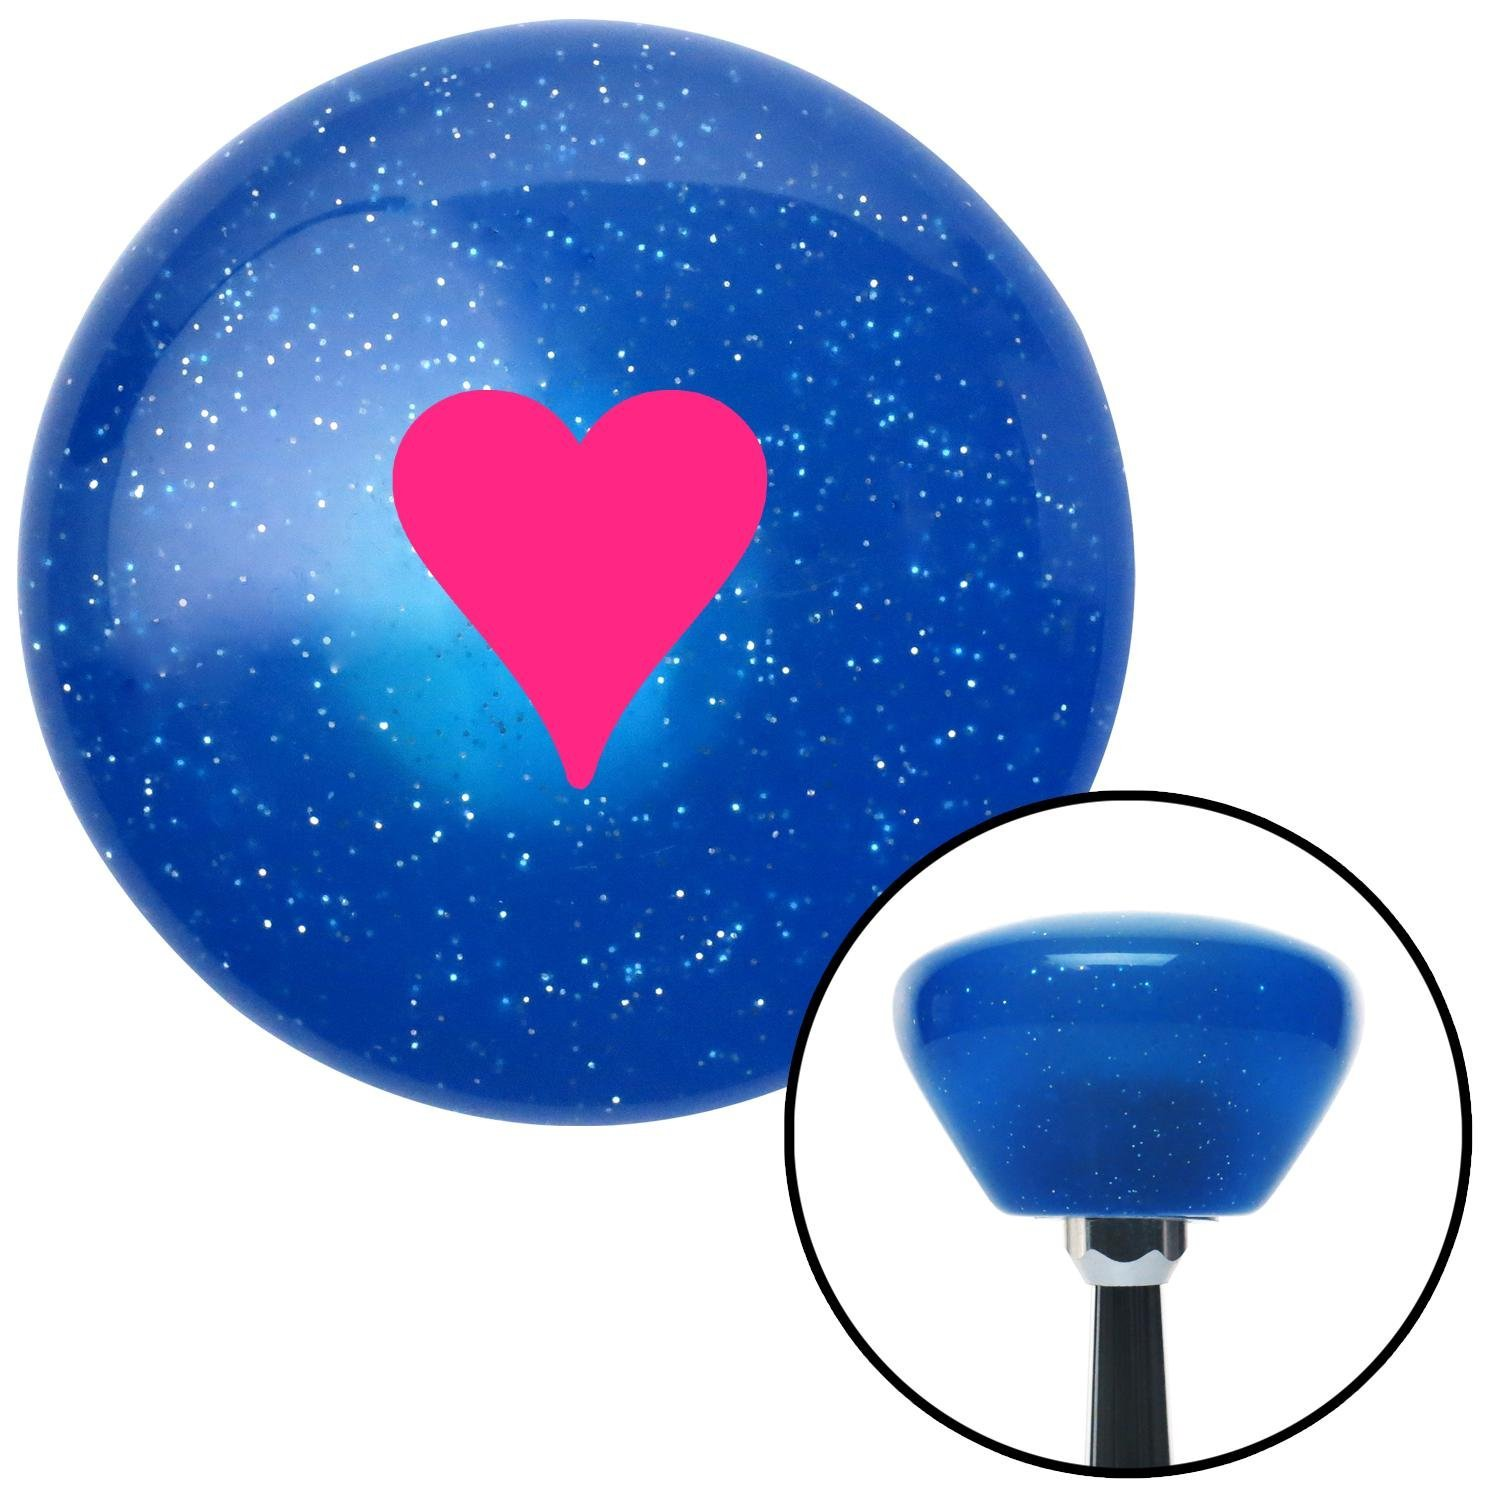 American Shifter 289260 Shift Knob Pink Hearts Blue Retro Metal Flake with M16 x 1.5 Insert